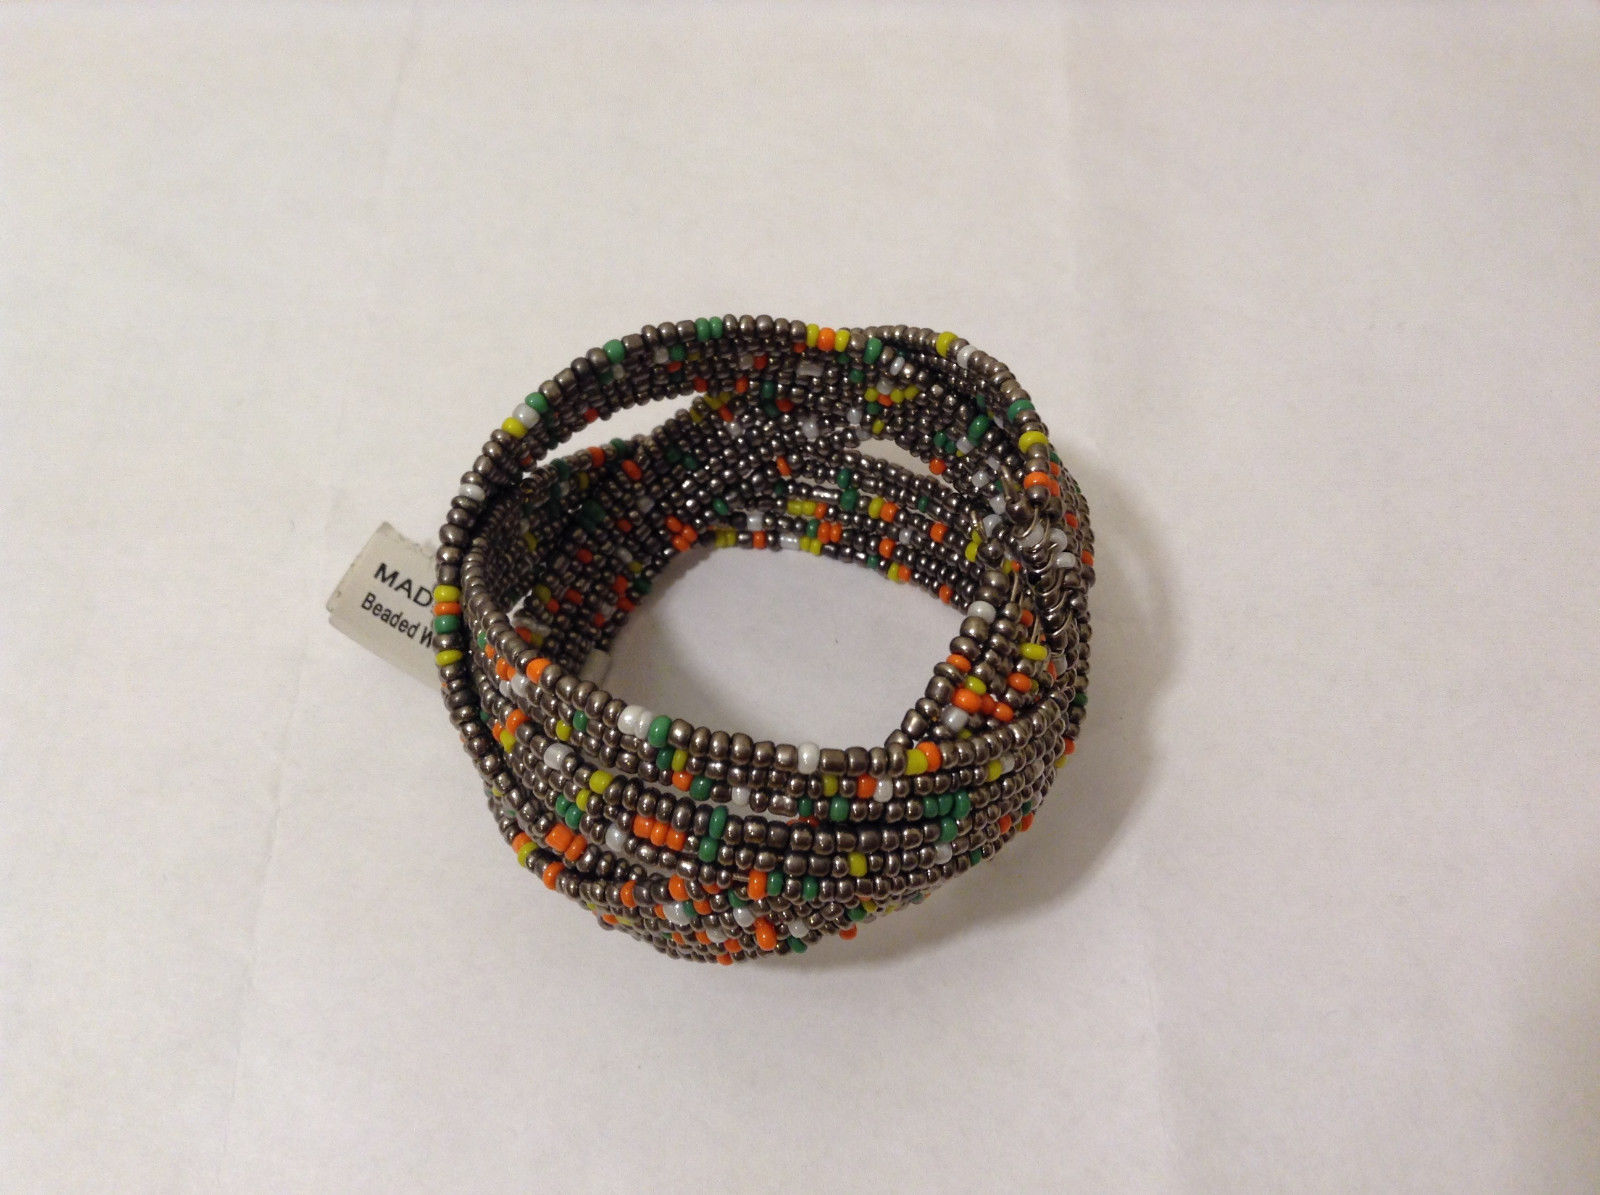 NEW Metal wire Beaded Weave Cuff Bracelet One Size fits all by MAD Style